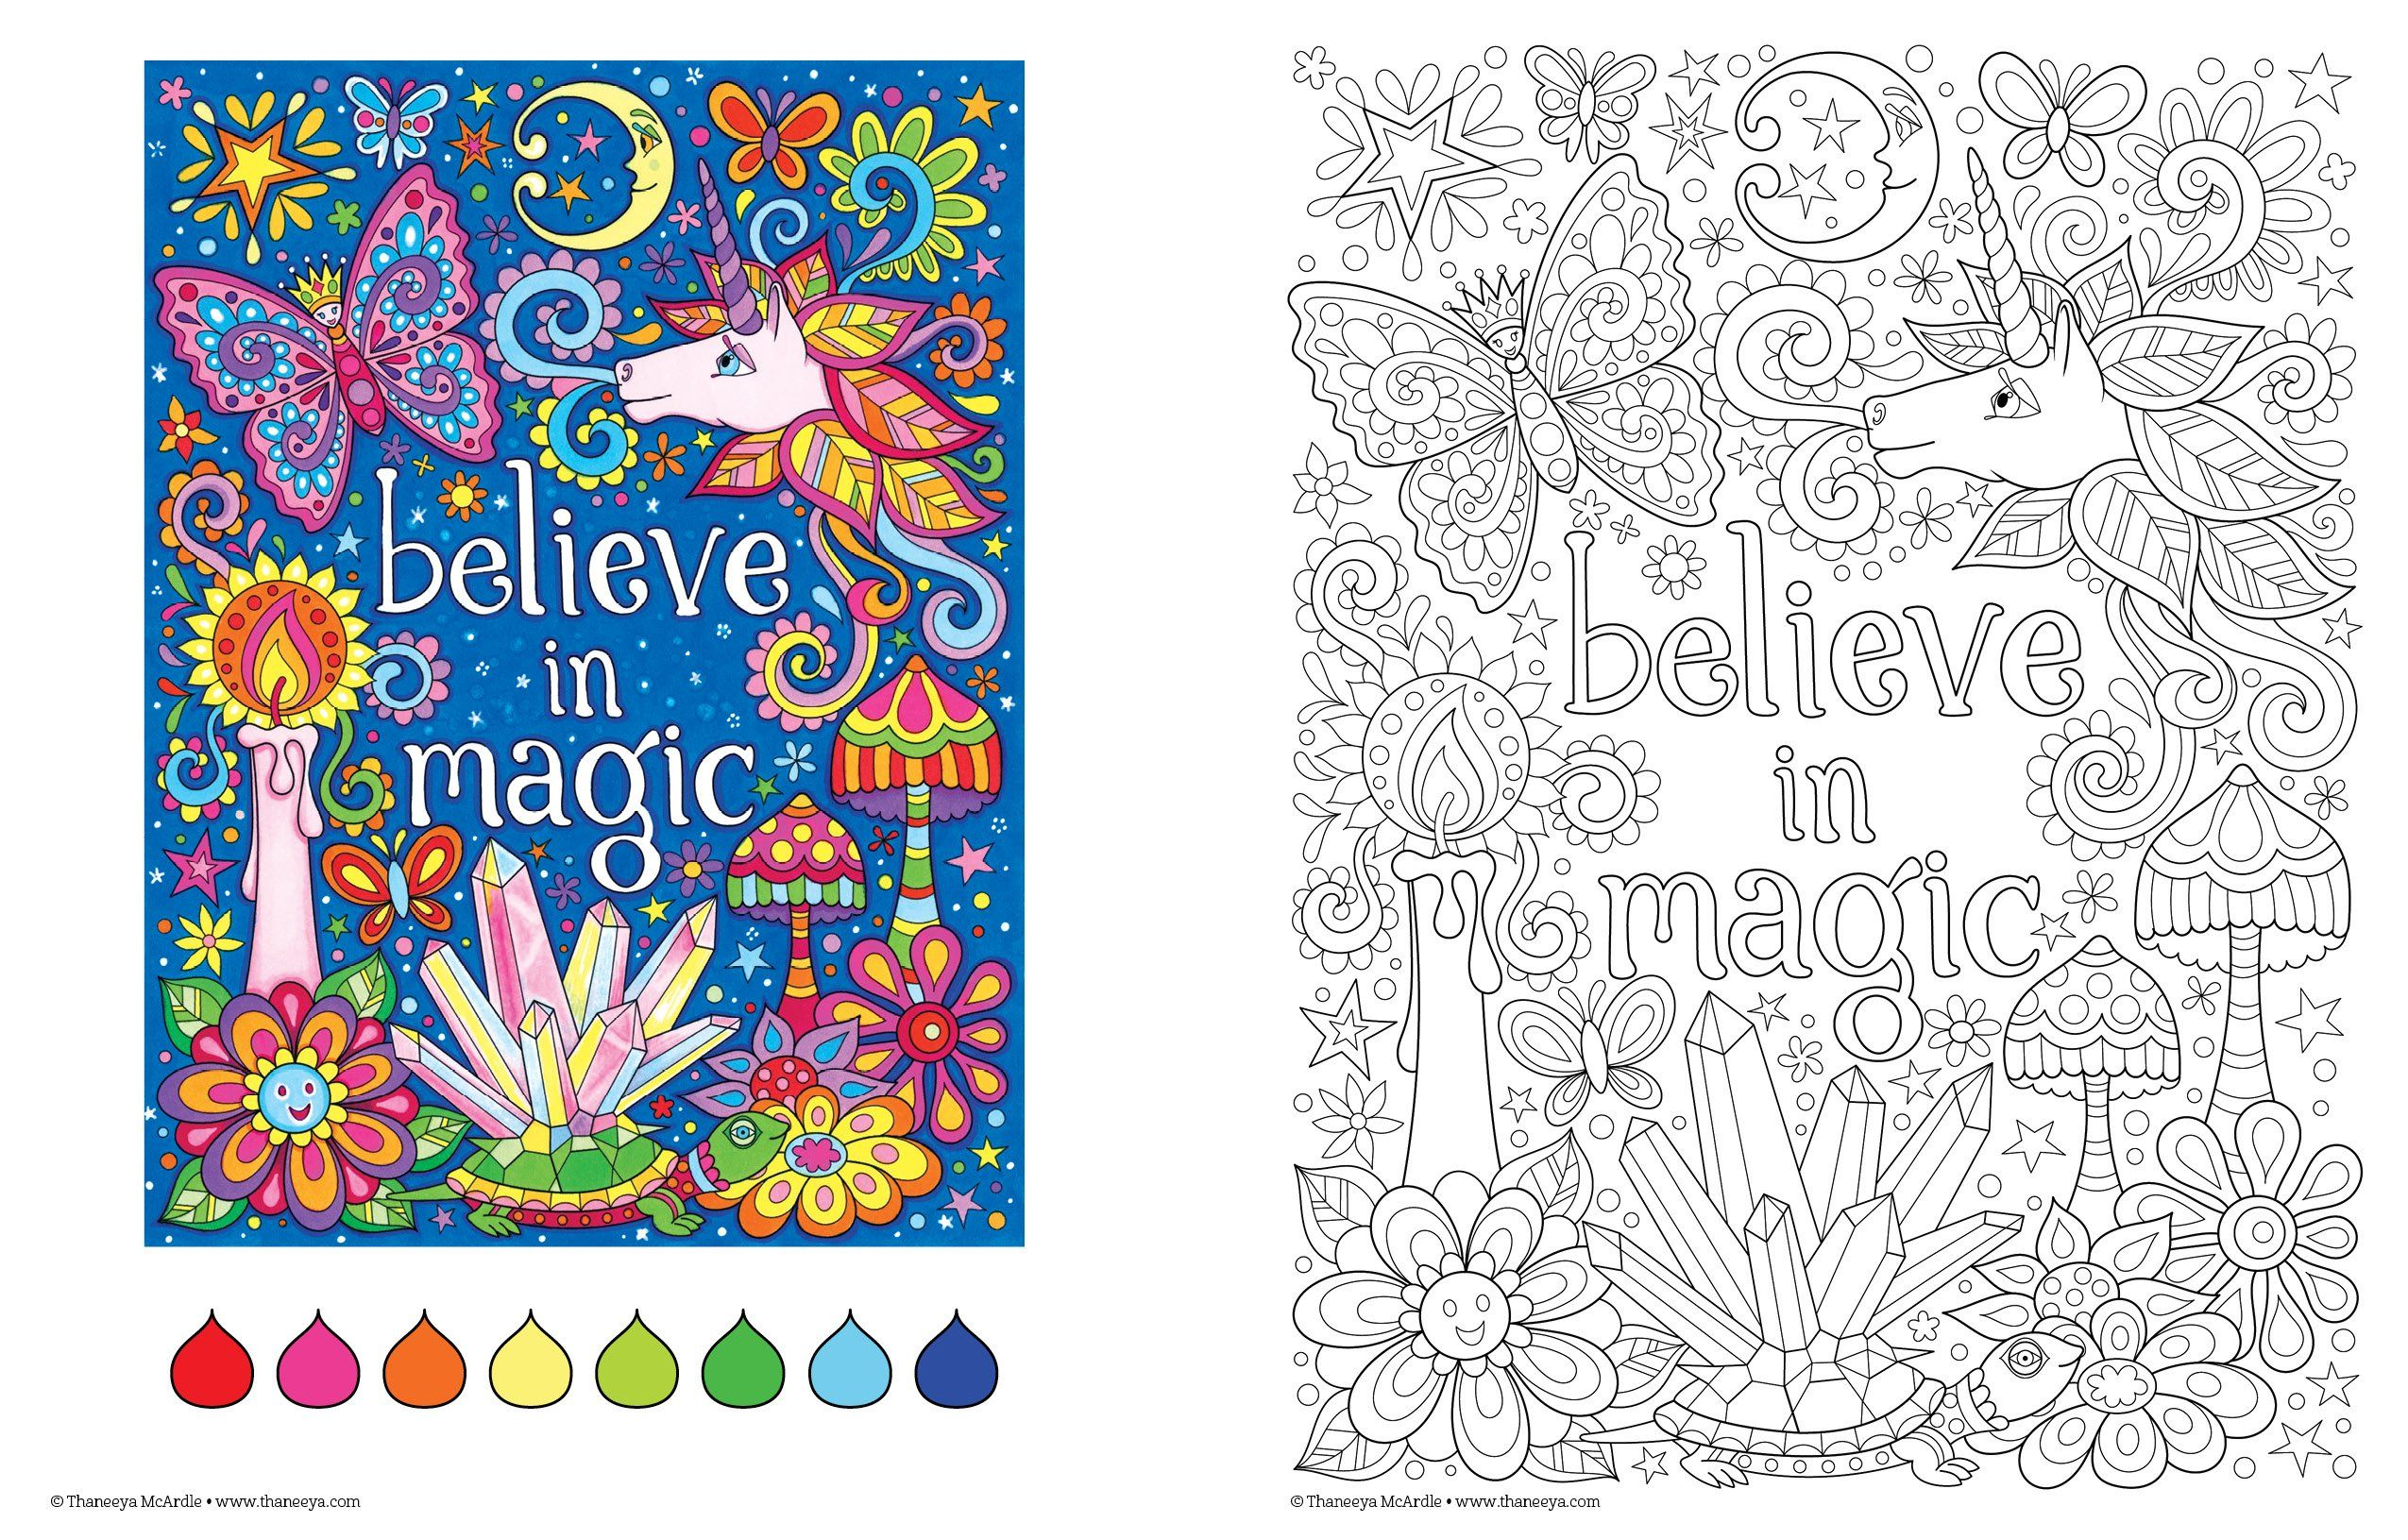 Free Spirit Coloring Book Coloring Is Fun Thaneeya Mcardle 9781574219975 Amazon Com Books Coloring Books Relaxing Coloring Book Art Activities